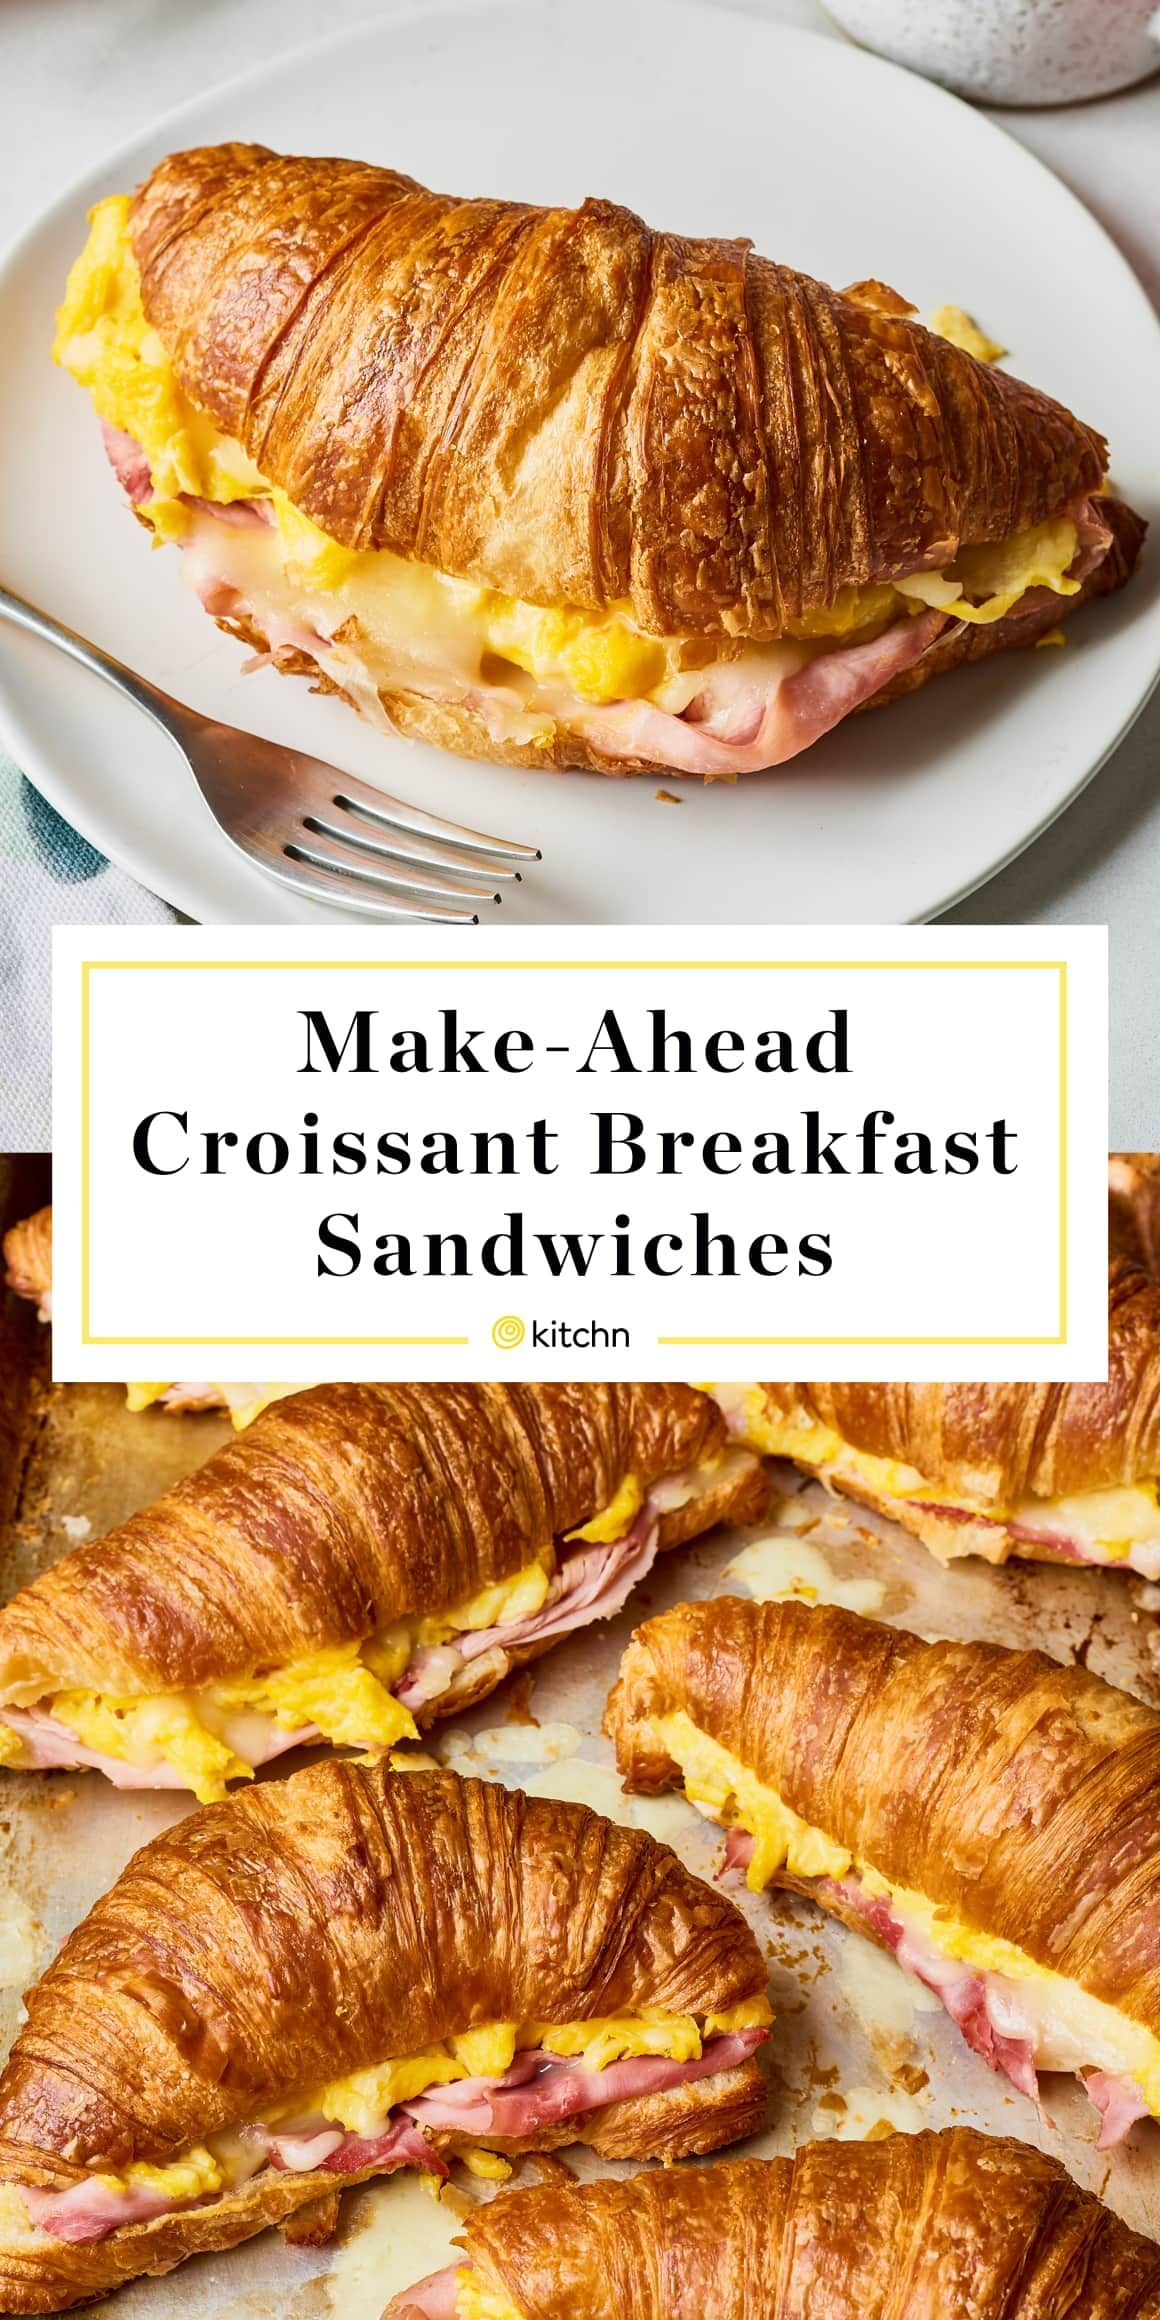 Recipe: Make-Ahead Croissant Breakfast Sandwiches